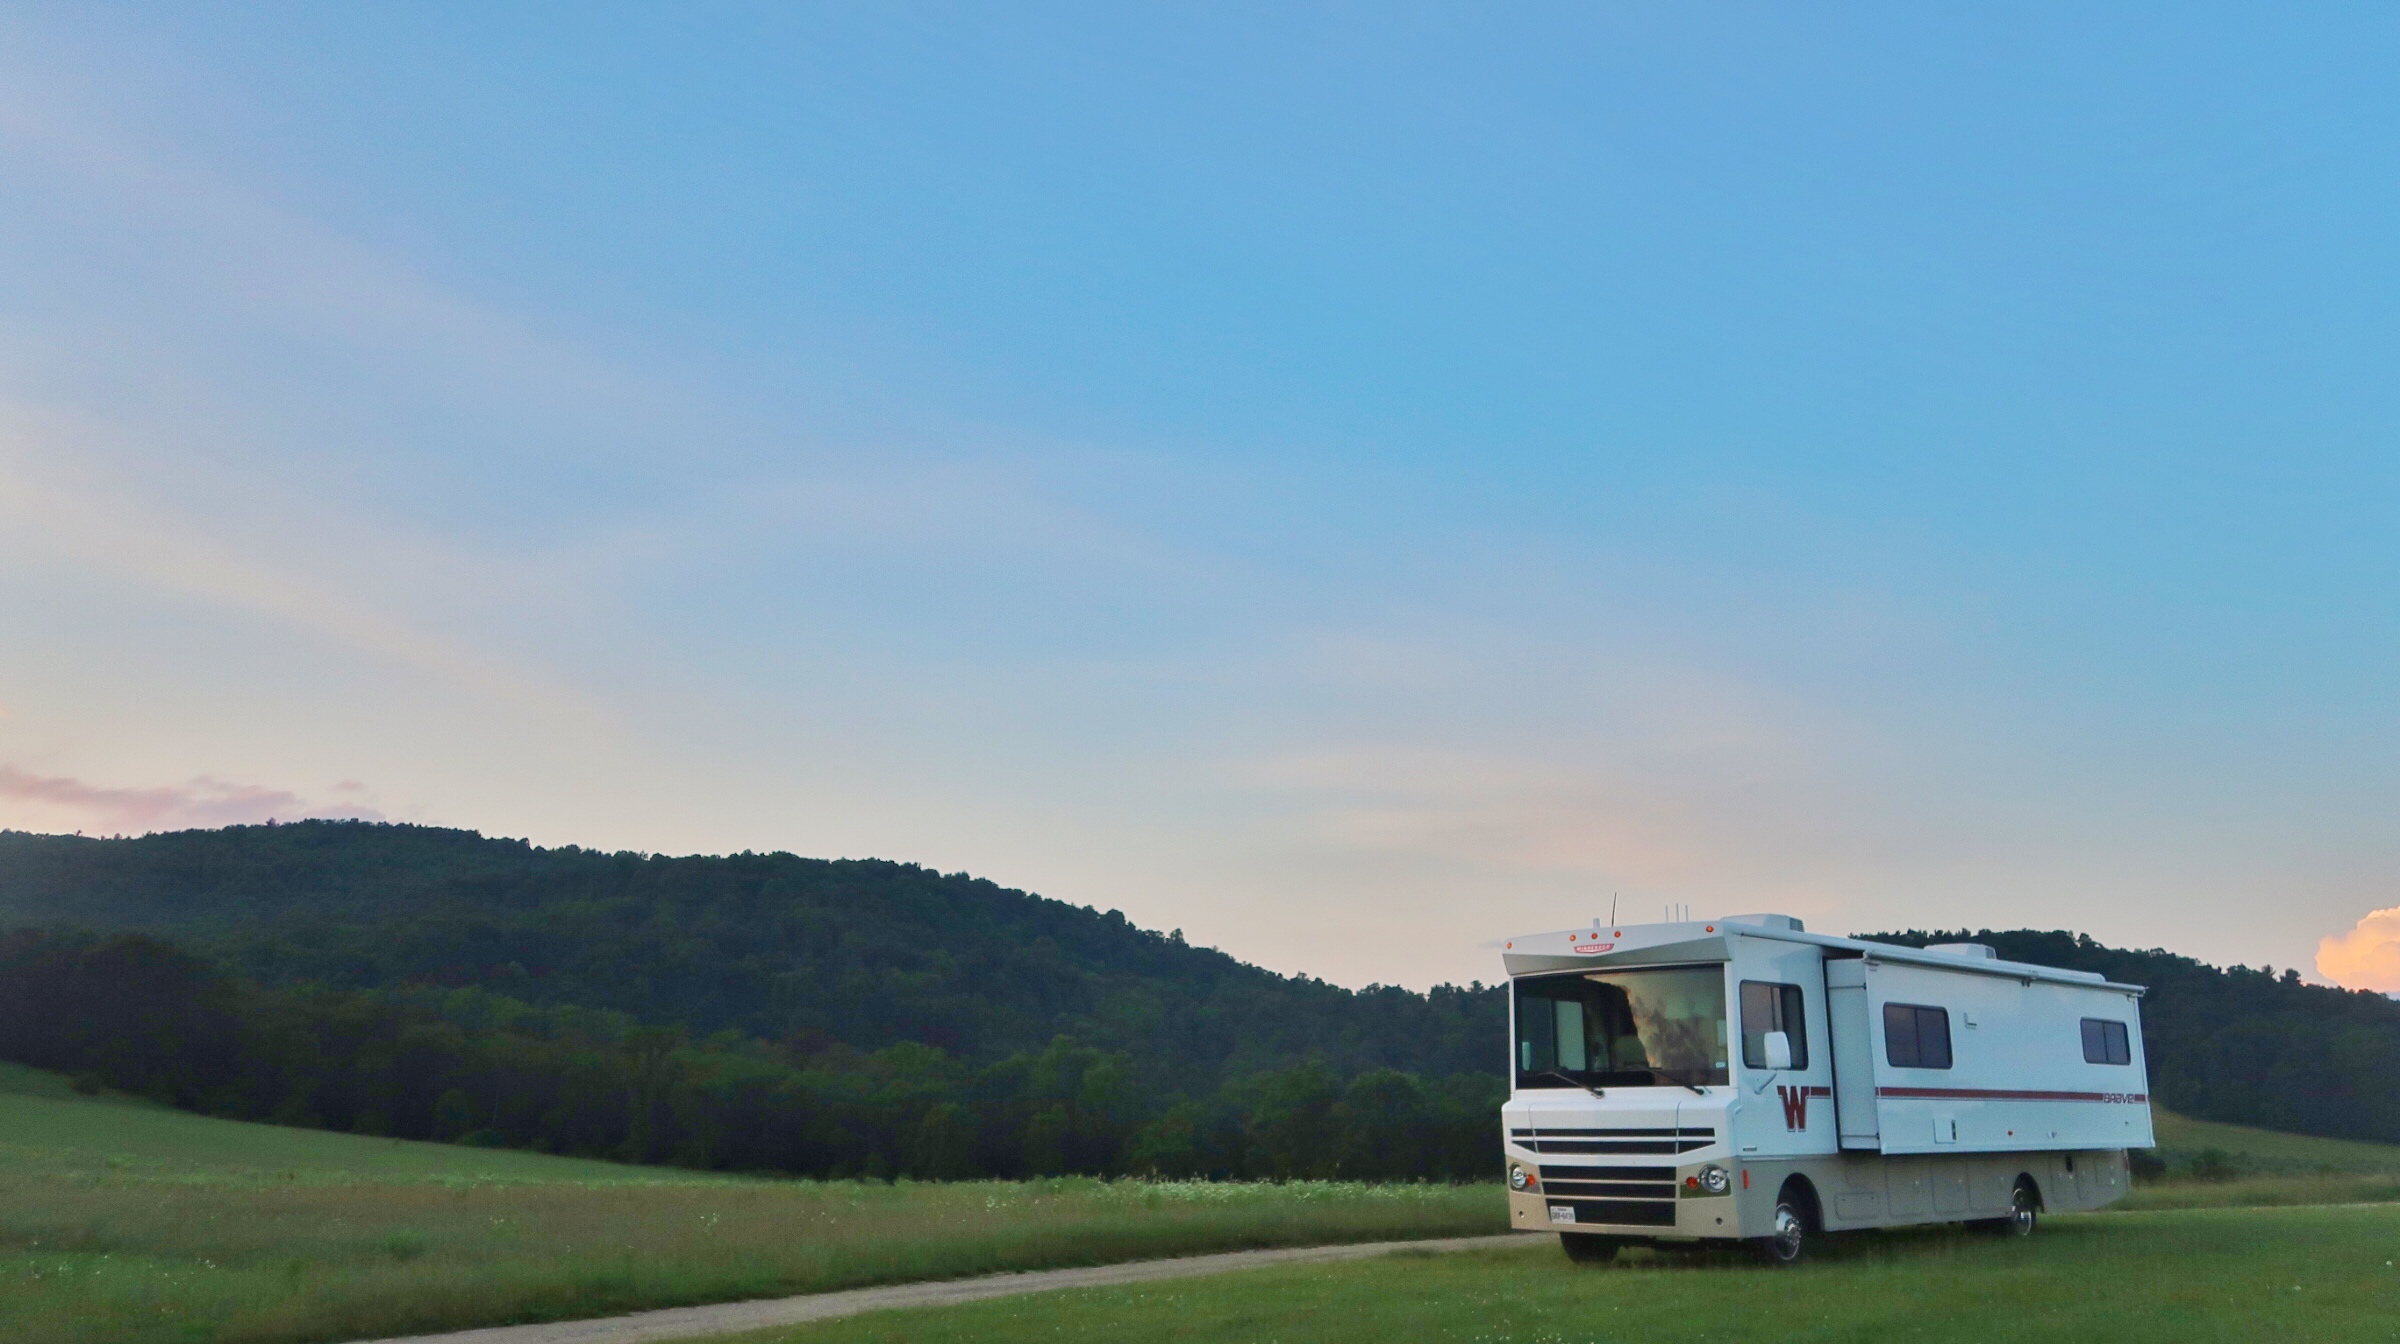 10 Things We've Learned from 3+ Years of RVing